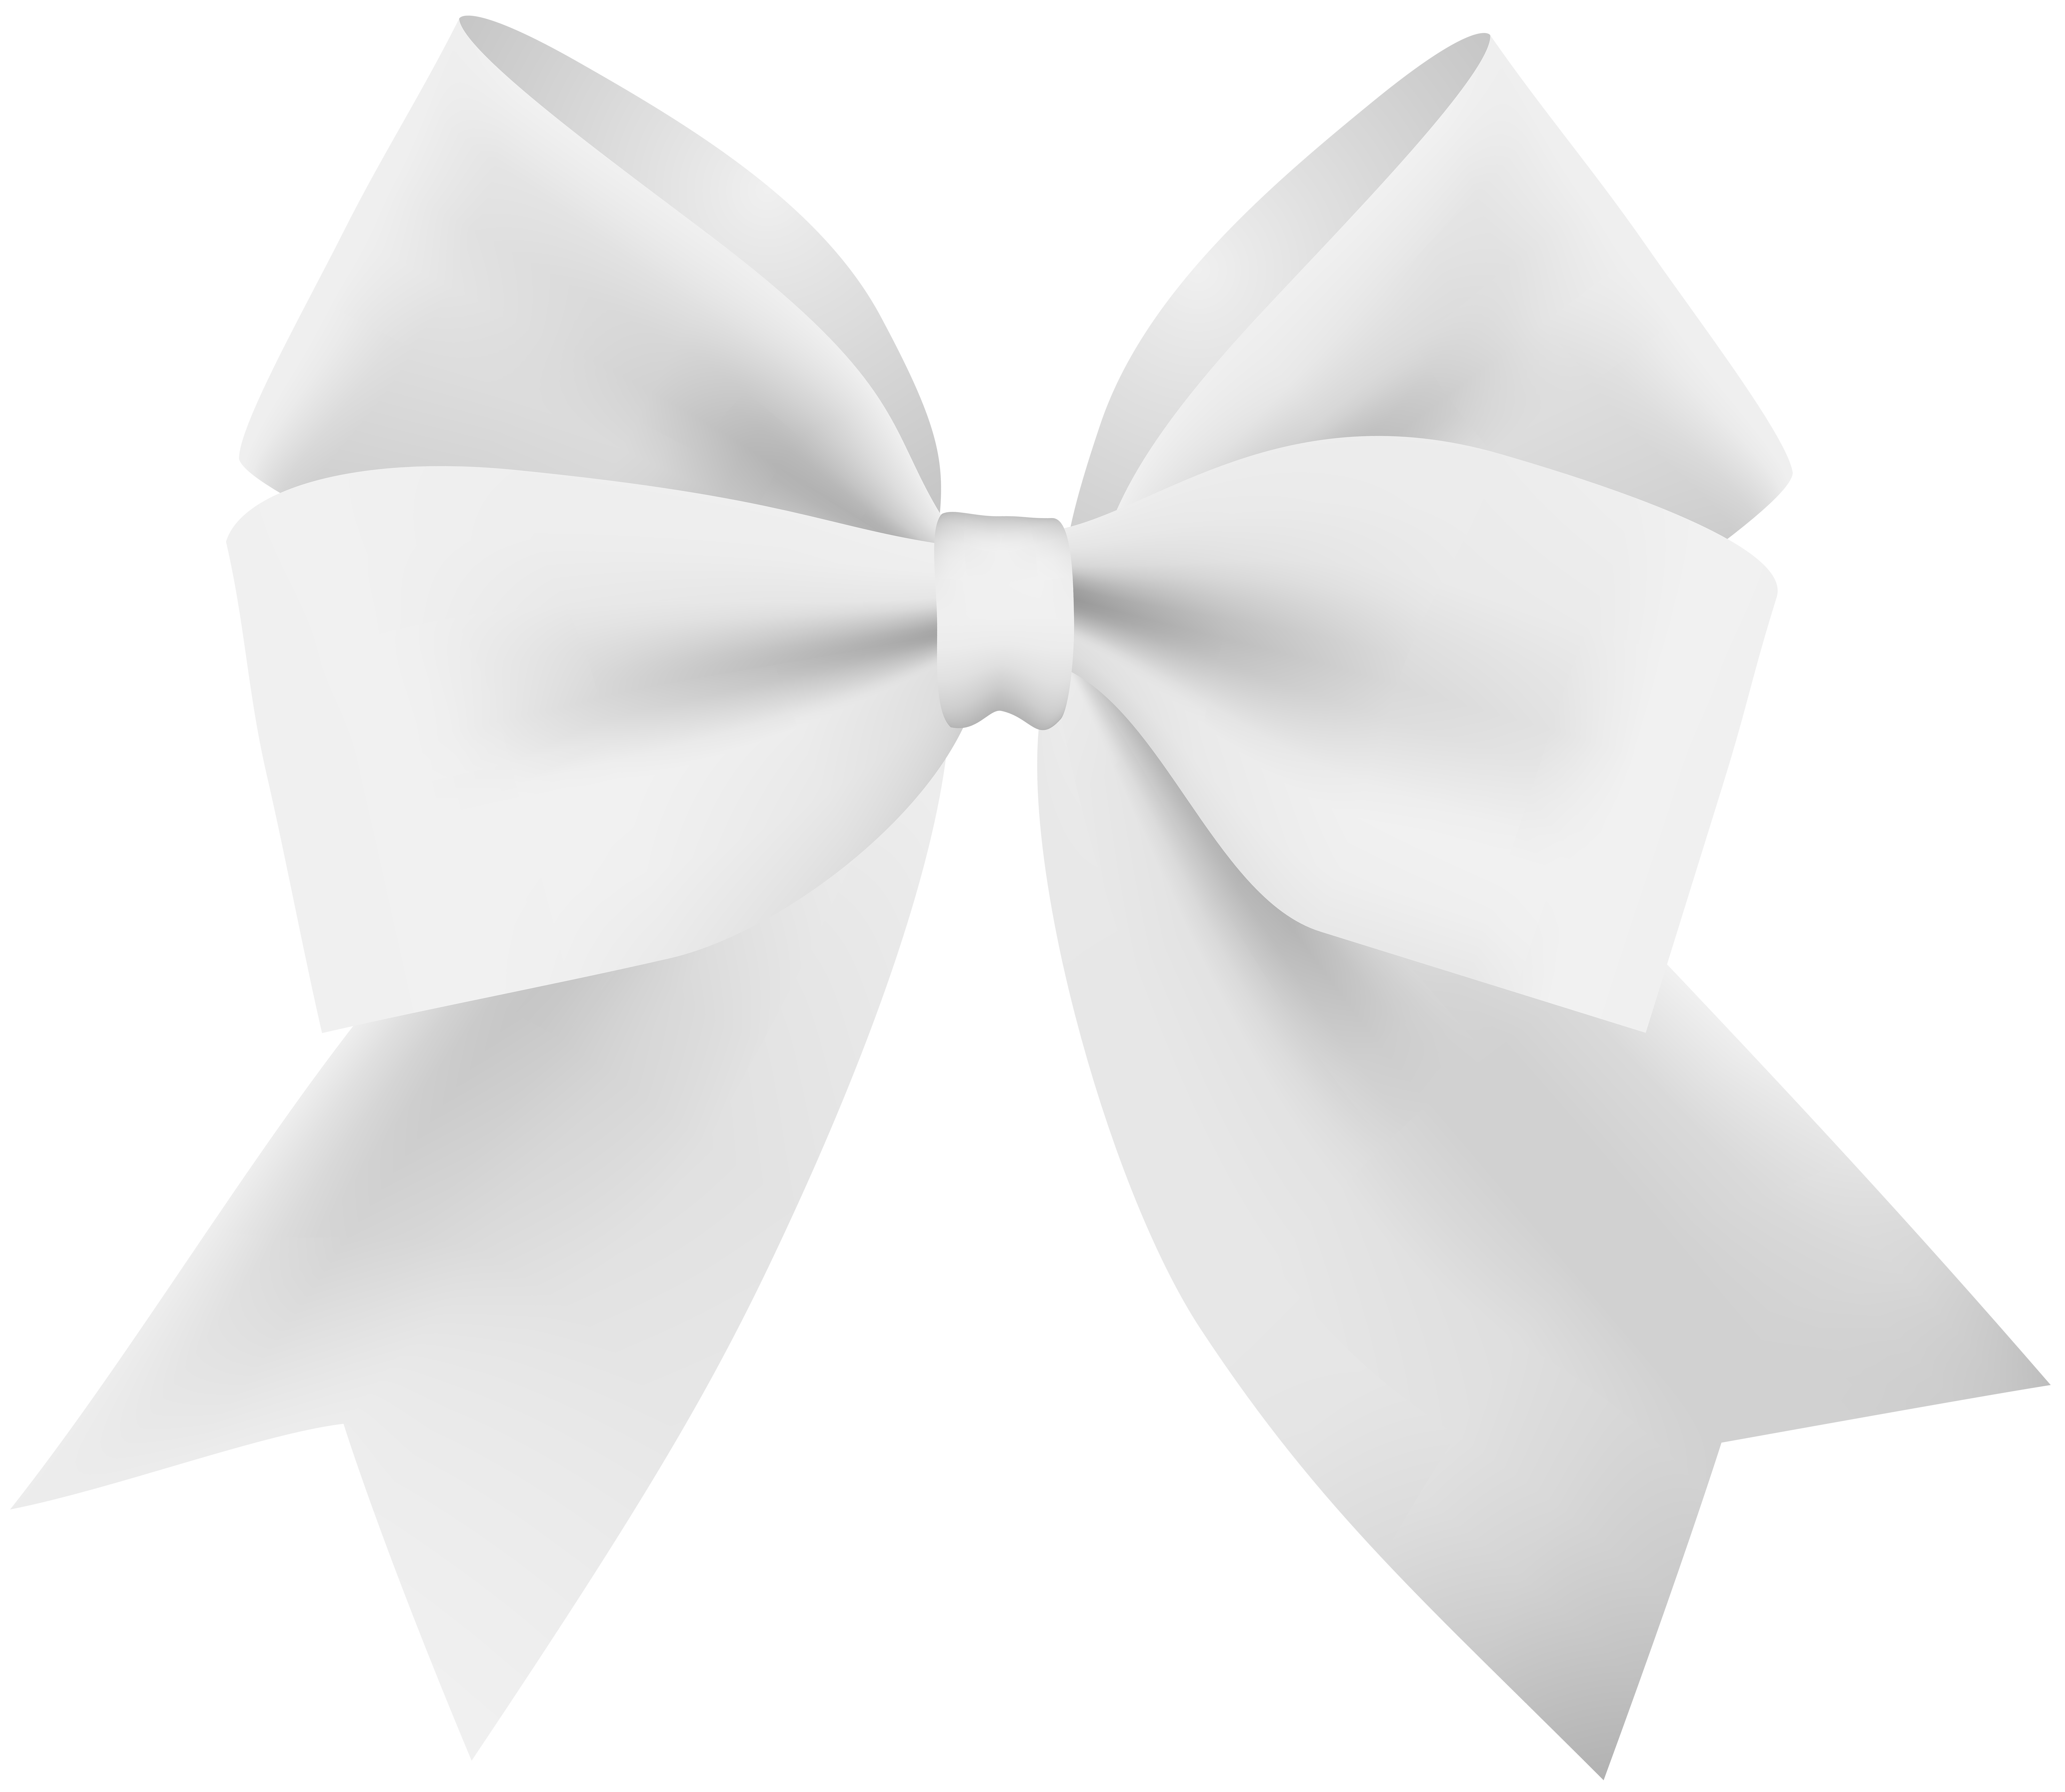 White bow png. Transparent image gallery yopriceville